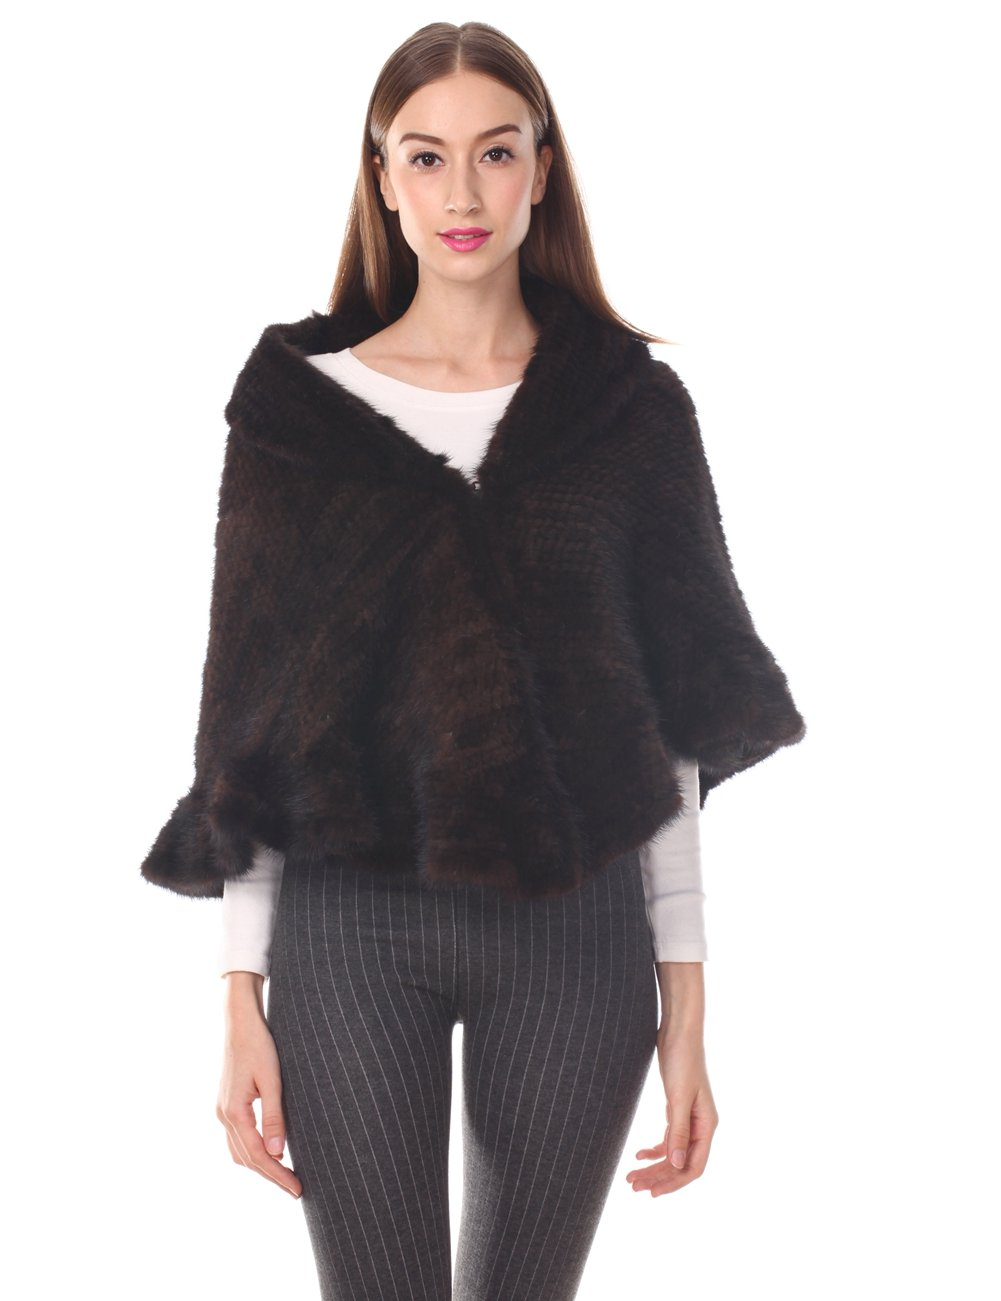 Ferand Ruffled Knitted Mink Fur Stole, Lightweight Closable One Size Fits All for Women, Brown